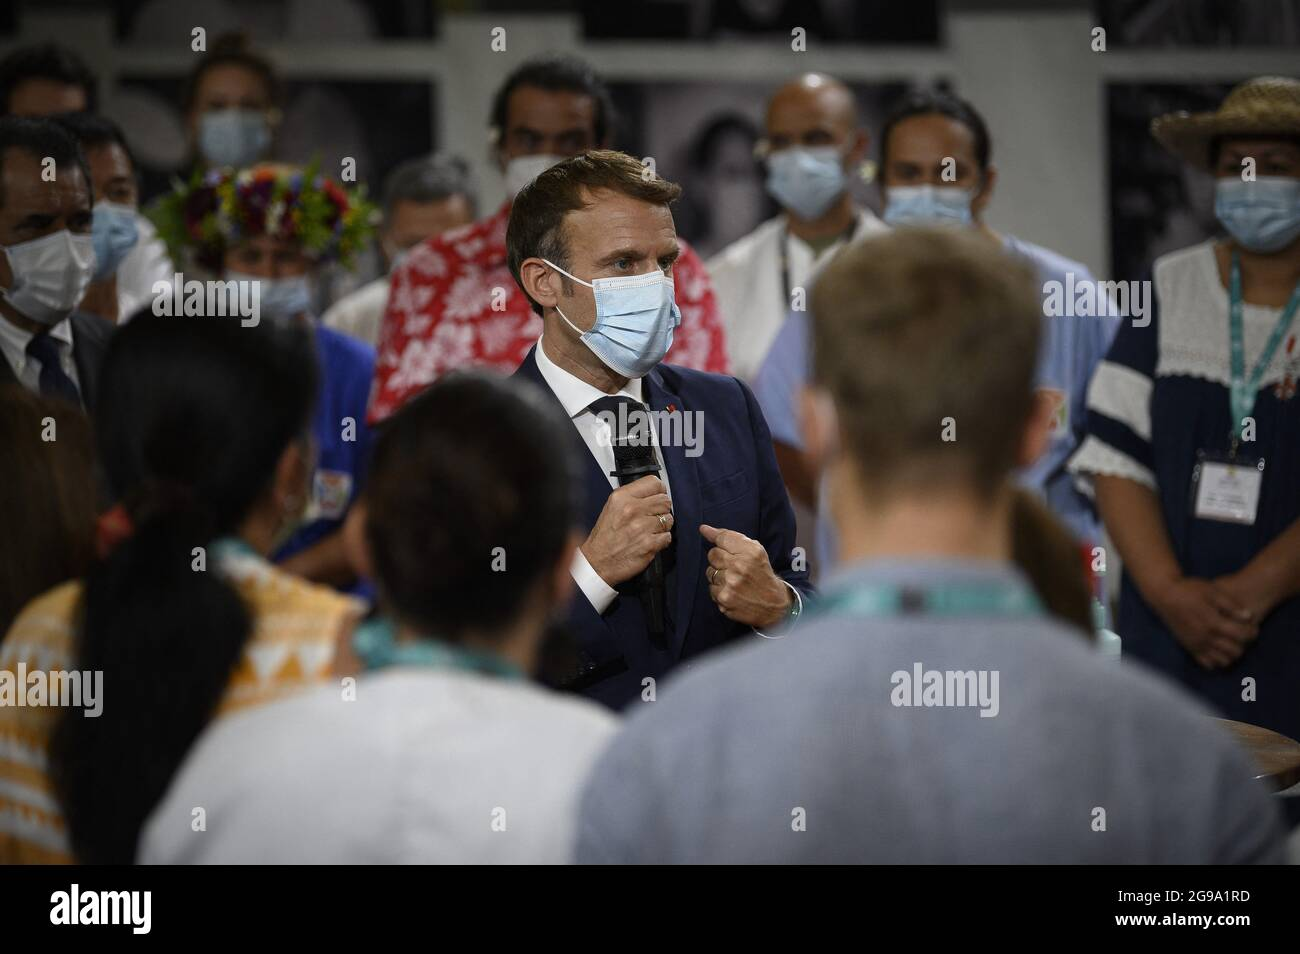 France's President Emmanuel Macron (C) speaks with doctors and nurses working at the French Polynesia Hospital Centre in Papeete following his arrival for a visit to Tahiti in French Polynesia on July 24, 2021. Photo by Eliot Blondet/ABACAPRESS.COM Stock Photo